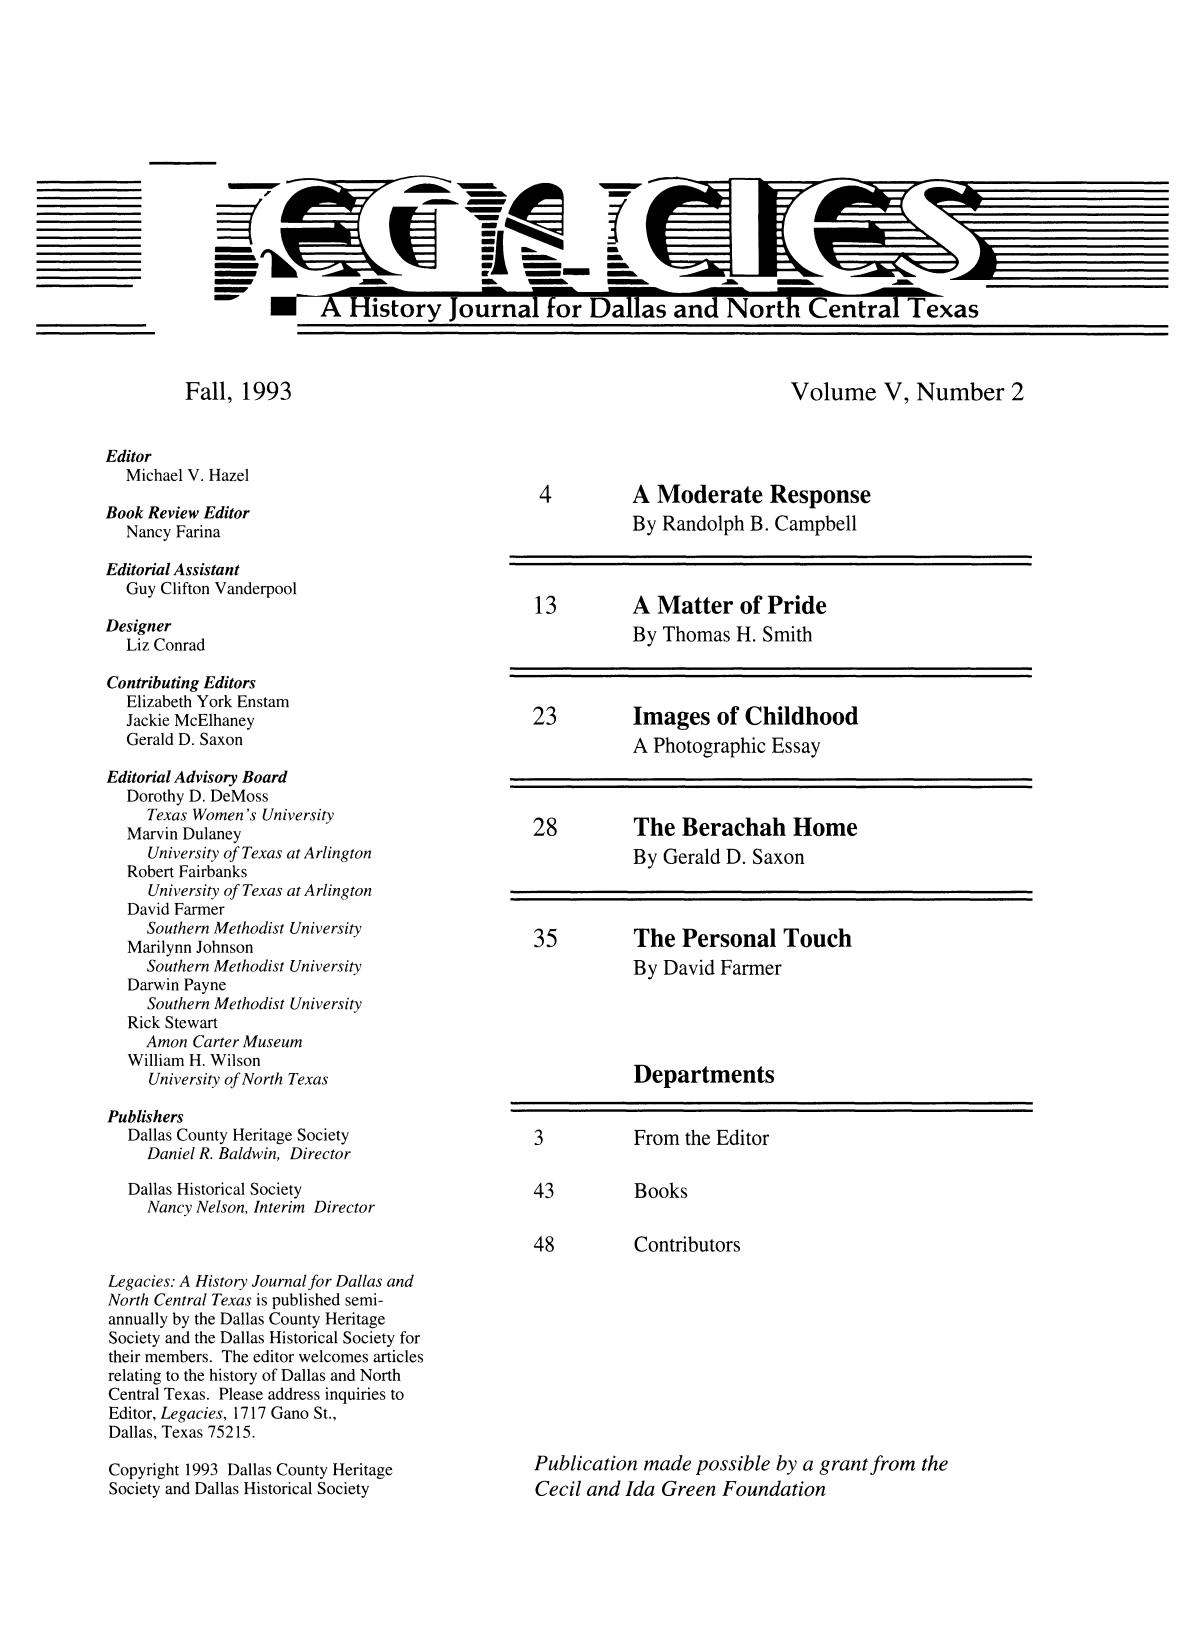 Legacies: A History Journal for Dallas and North Central Texas, Volume 5, Number 2, Fall, 1993                                                                                                      1